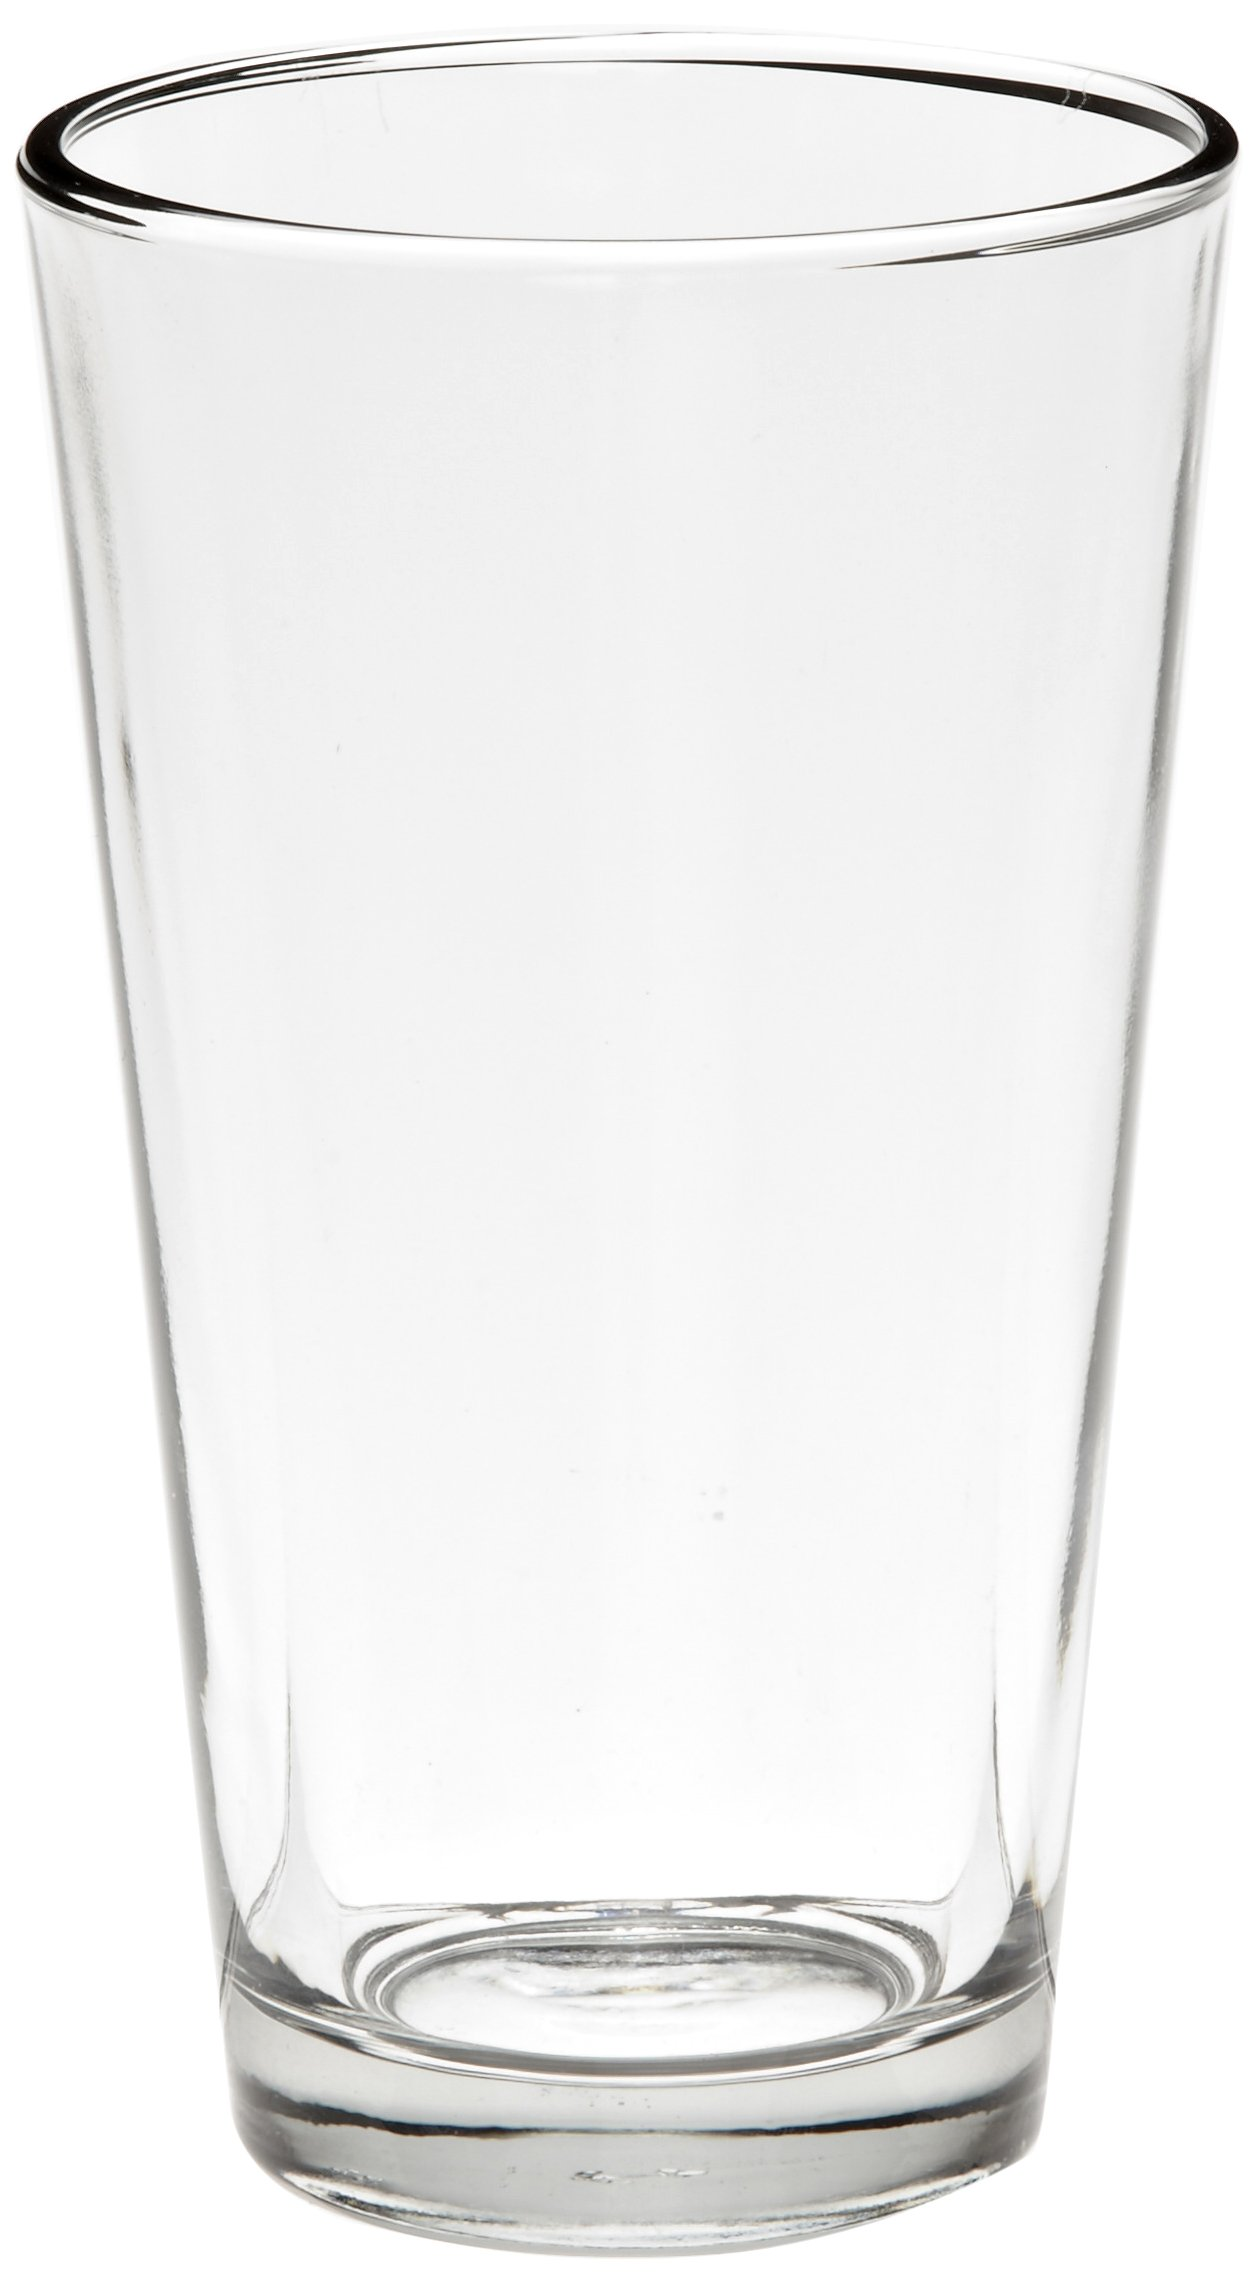 Anchor Hocking 7176FU 3-1/4 Inch Diameter x 5-7/8 Inch Height, 16-Ounce Mixing Glass, (Case of 24)